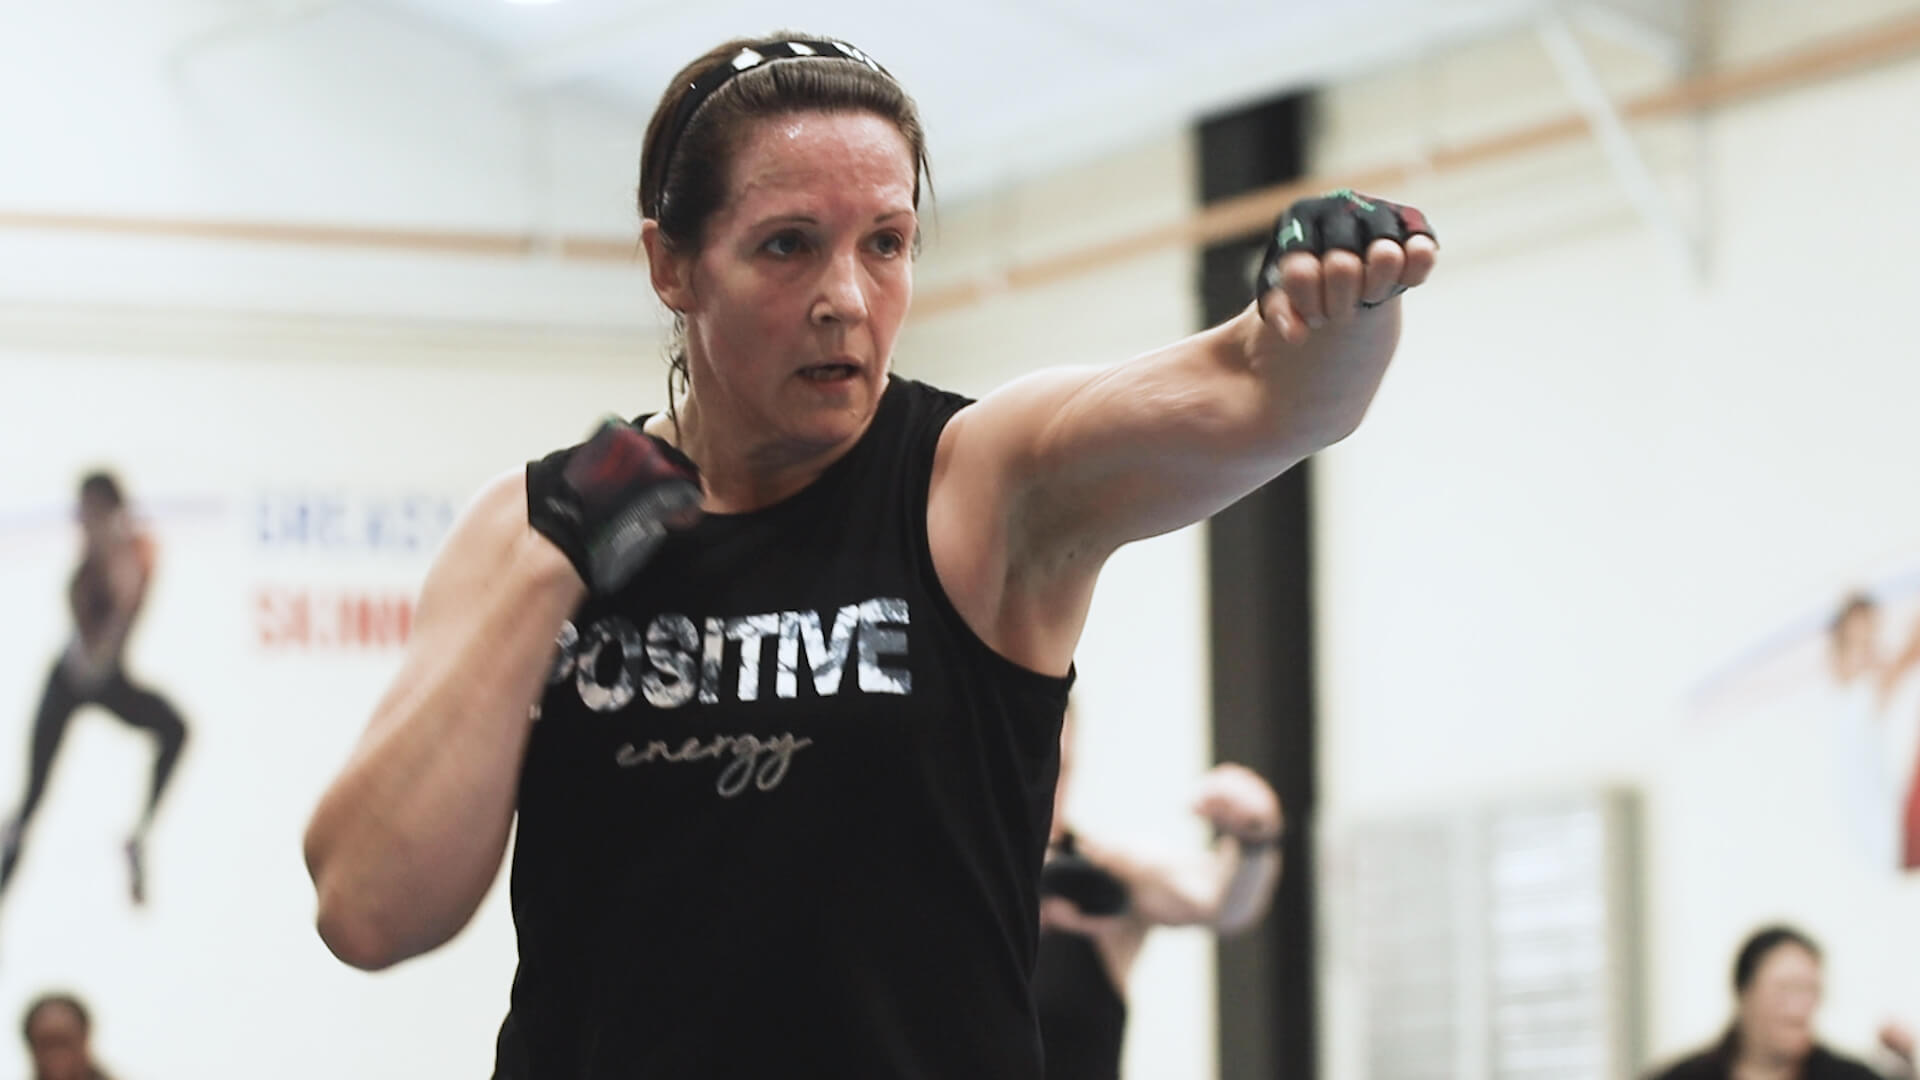 42 Life Leisure members took part in the five-hour marathon BodyCombat class42 Life Leisure members took part in the five-hour marathon BodyCombat class